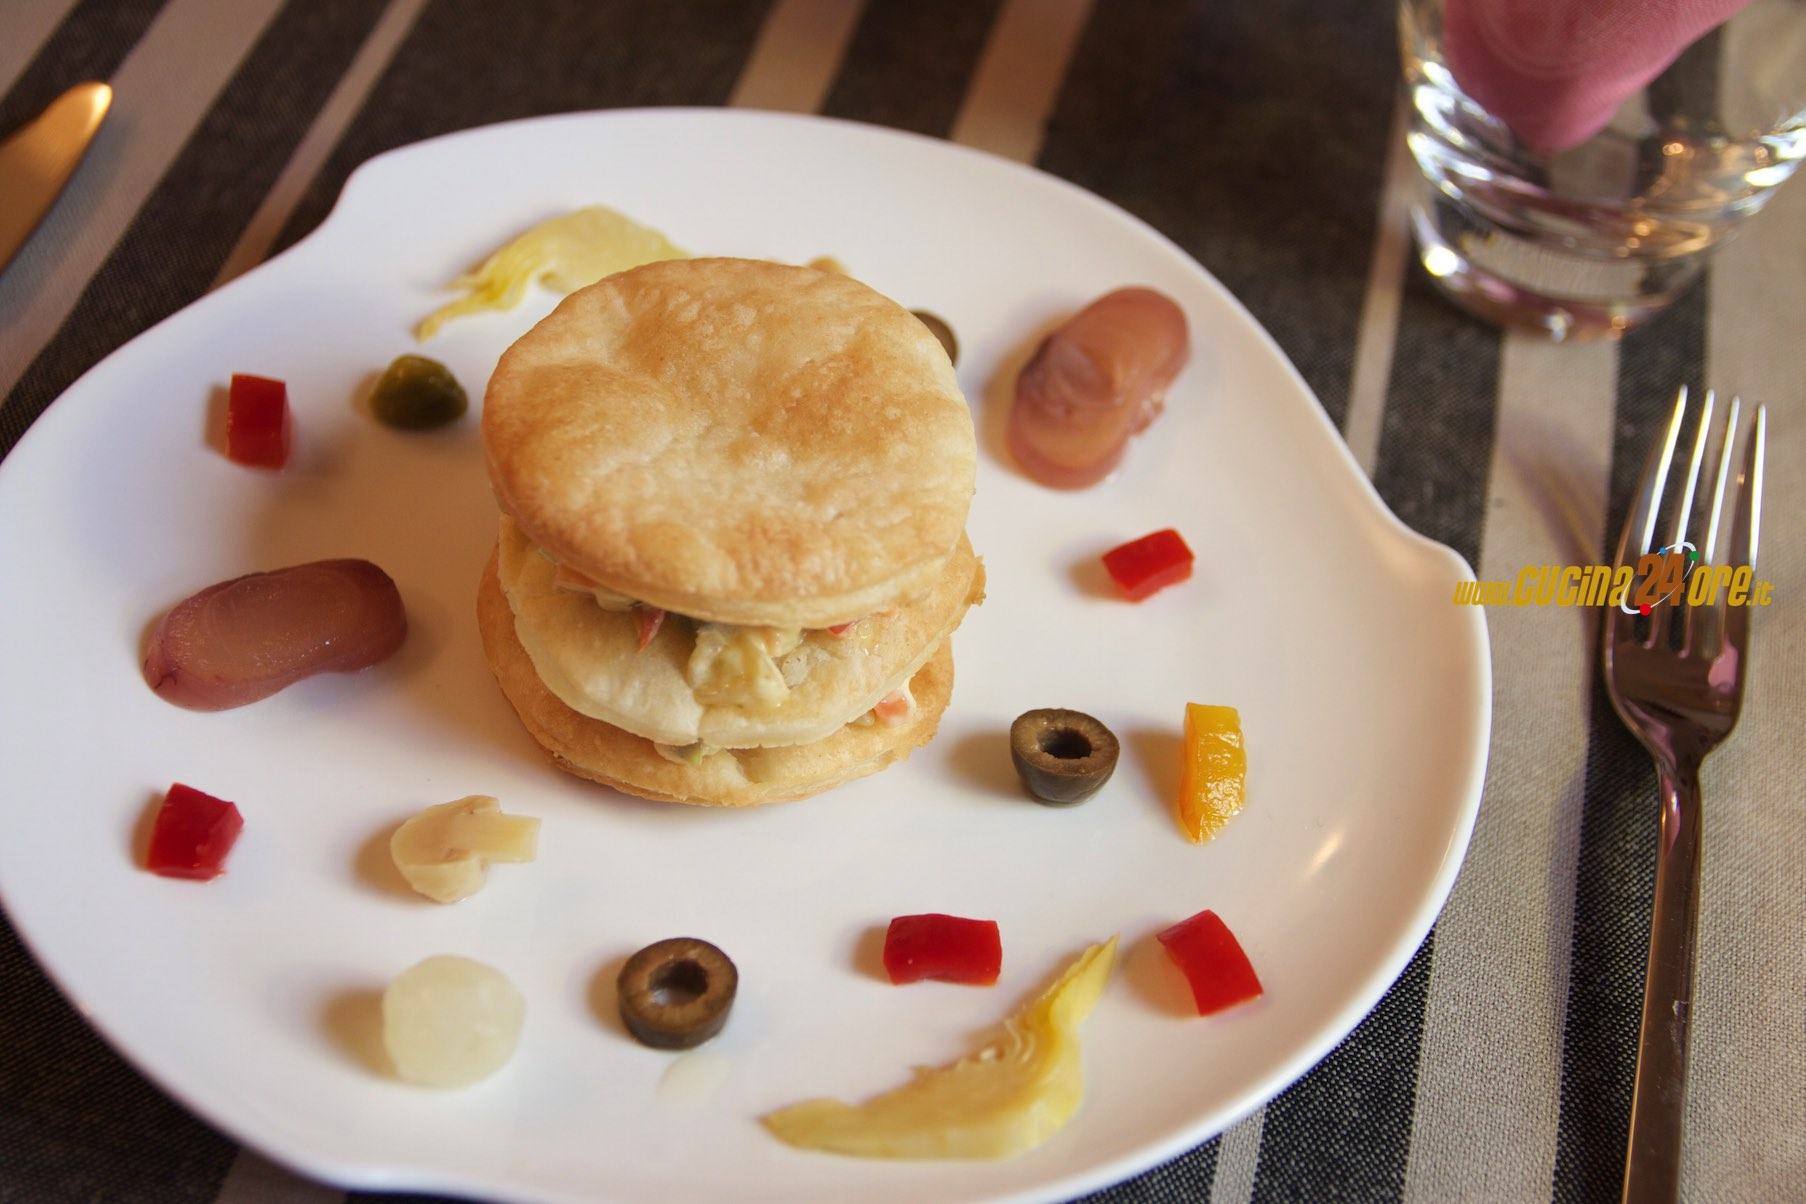 Millefoglie Salato Senza Glutine alle Verdure | Mille Feuille Salad with Vegetables GlutenFree